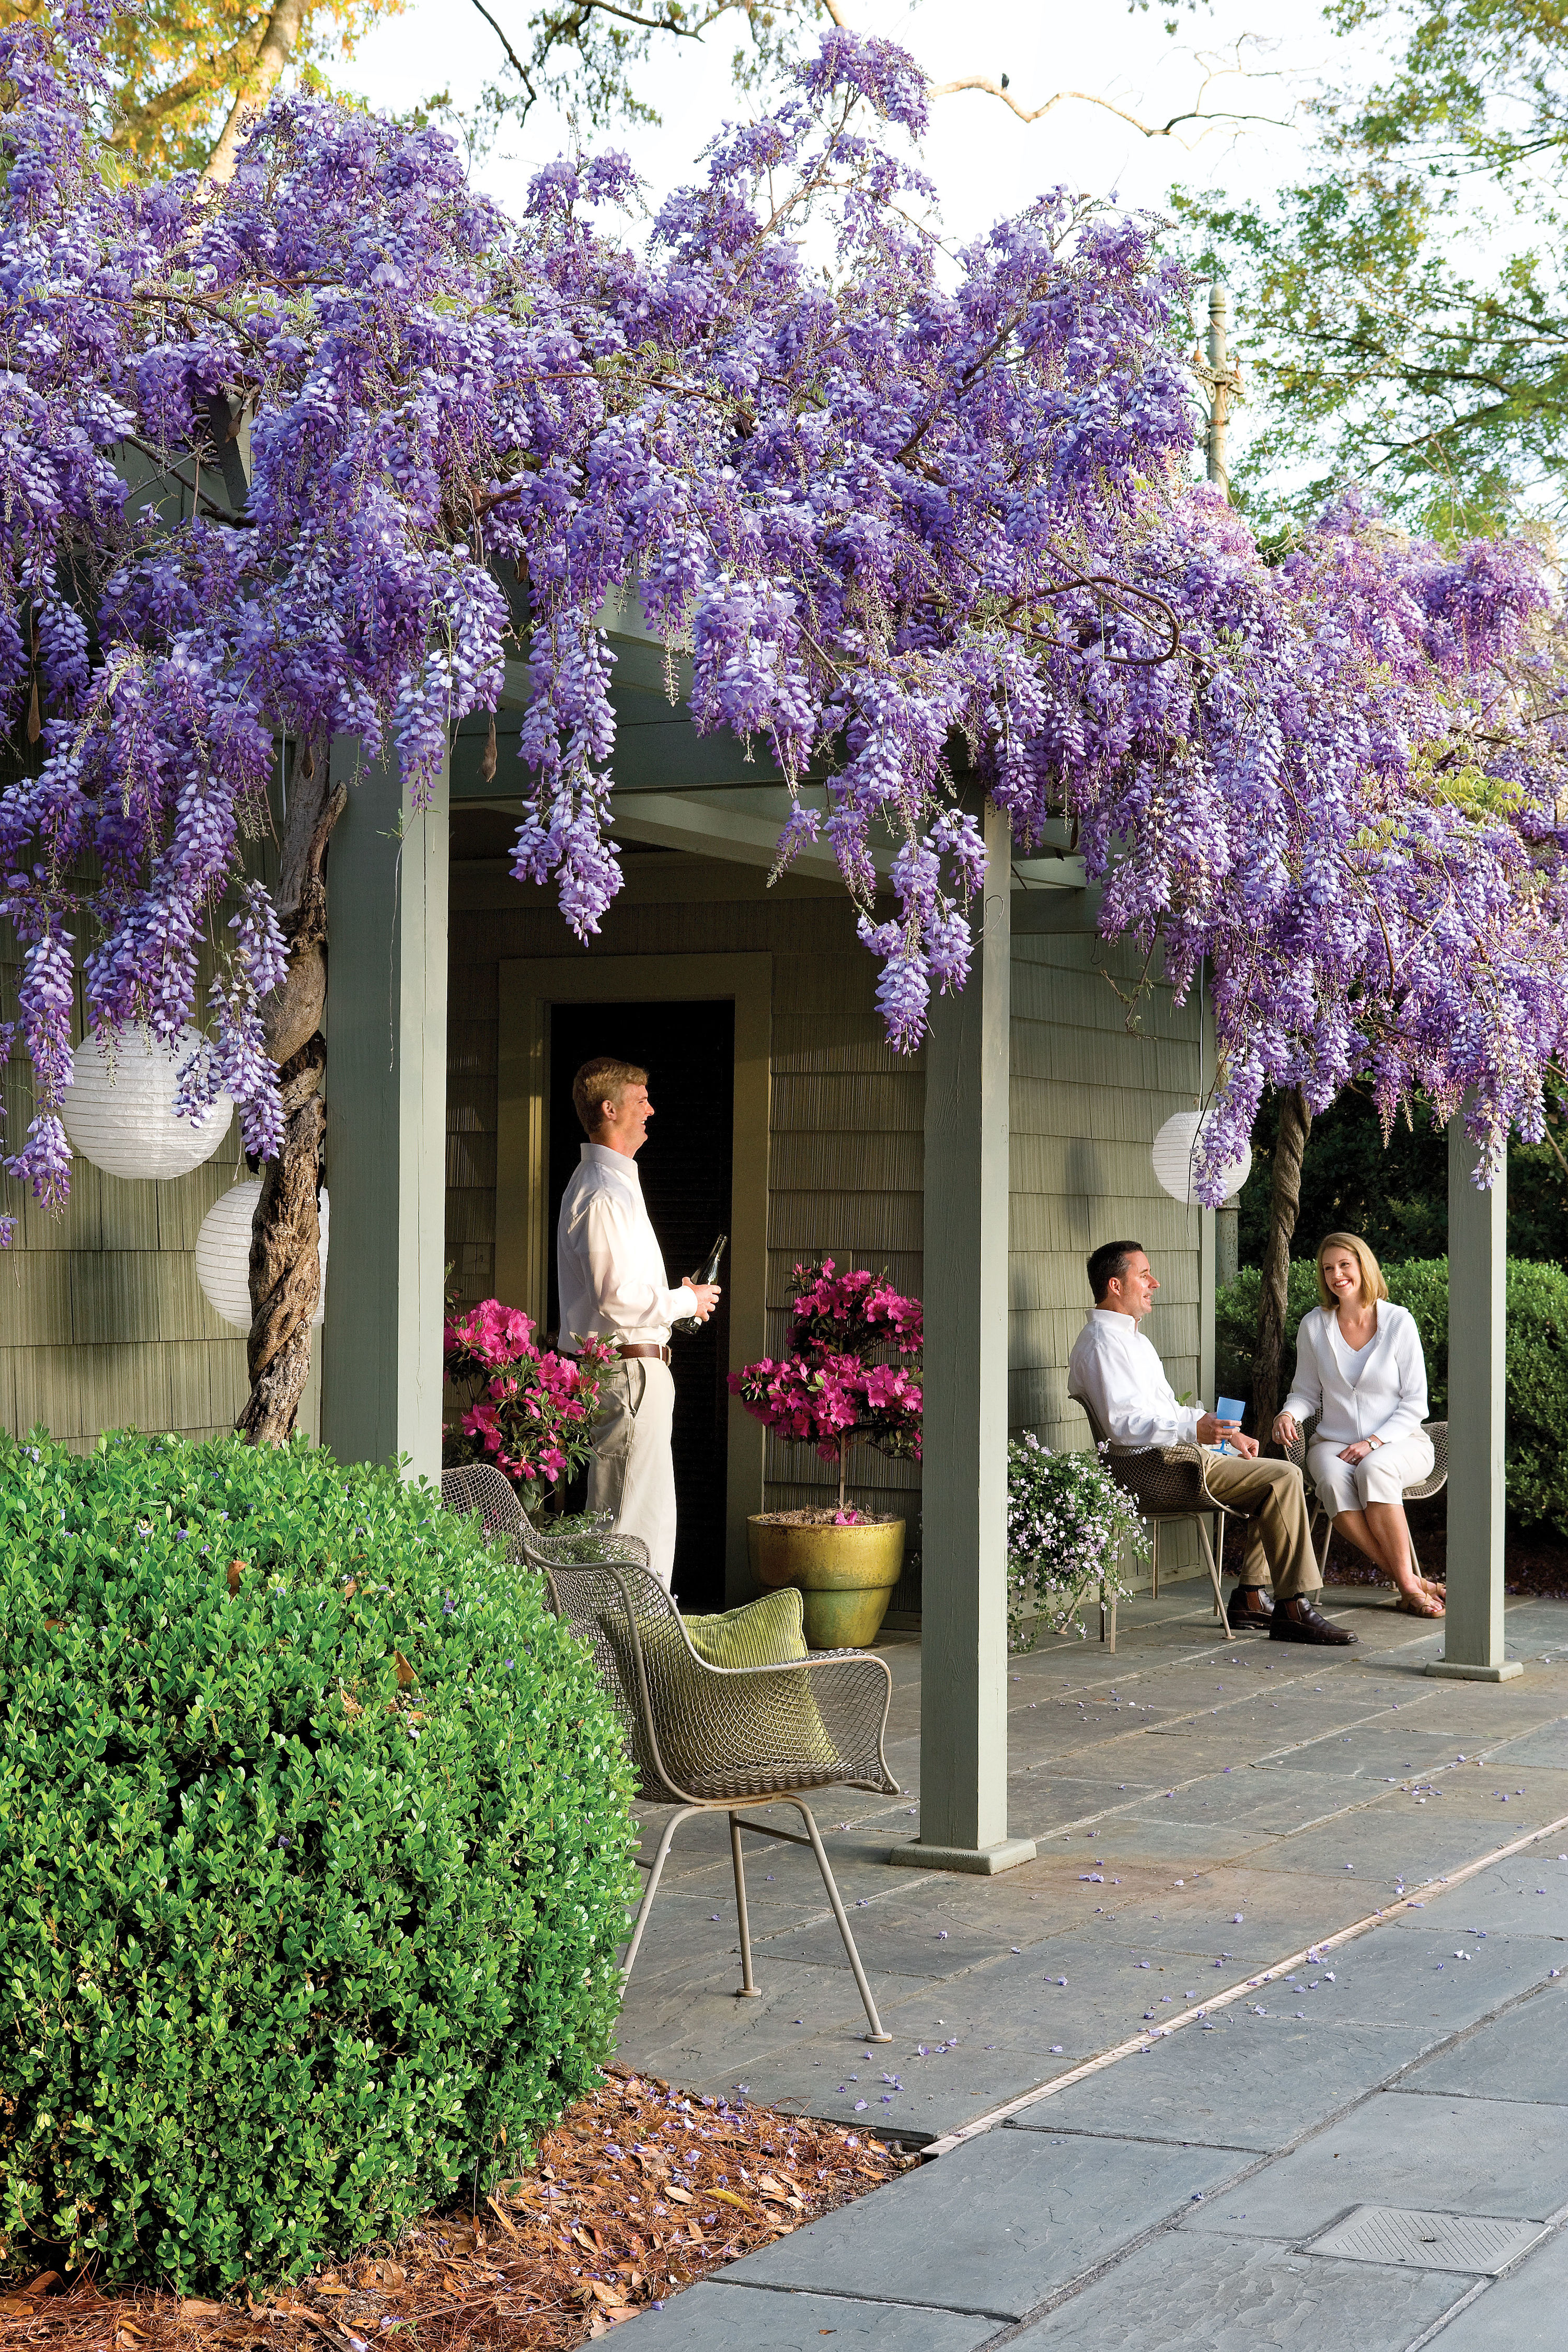 Why We All Love Wisteria Vines